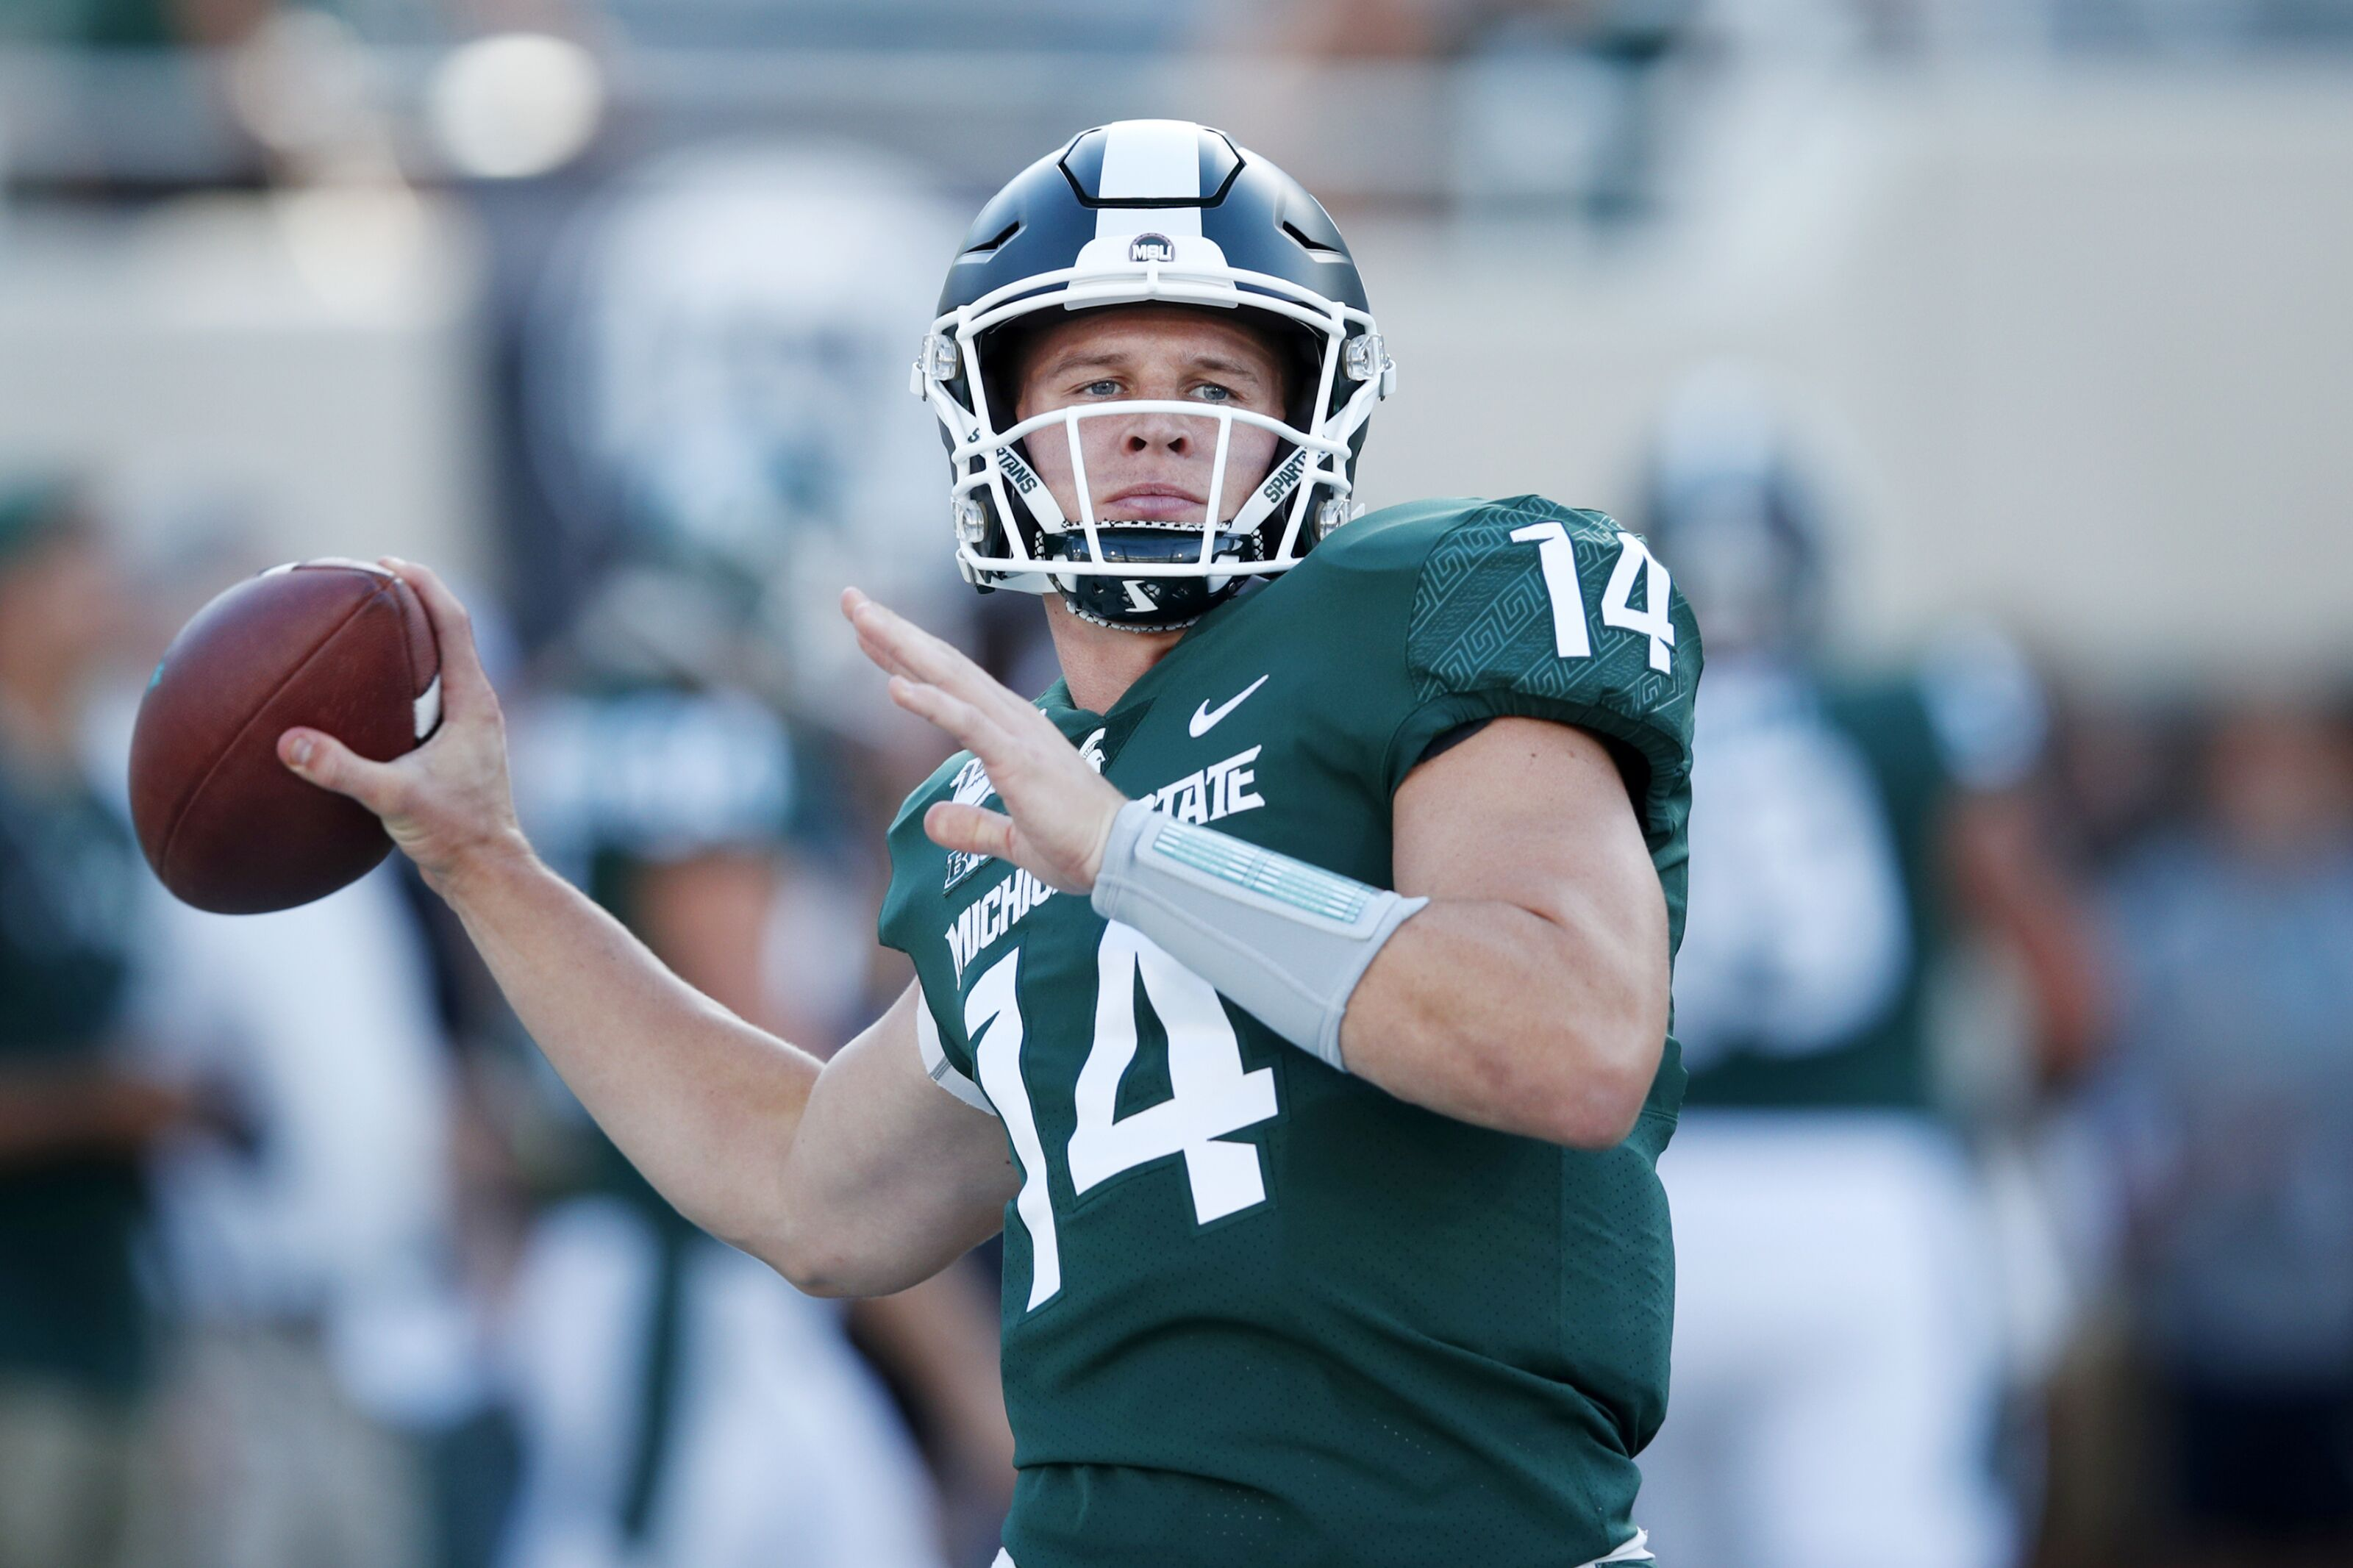 Michigan State Football: 3 overreactions from win over Western Michigan